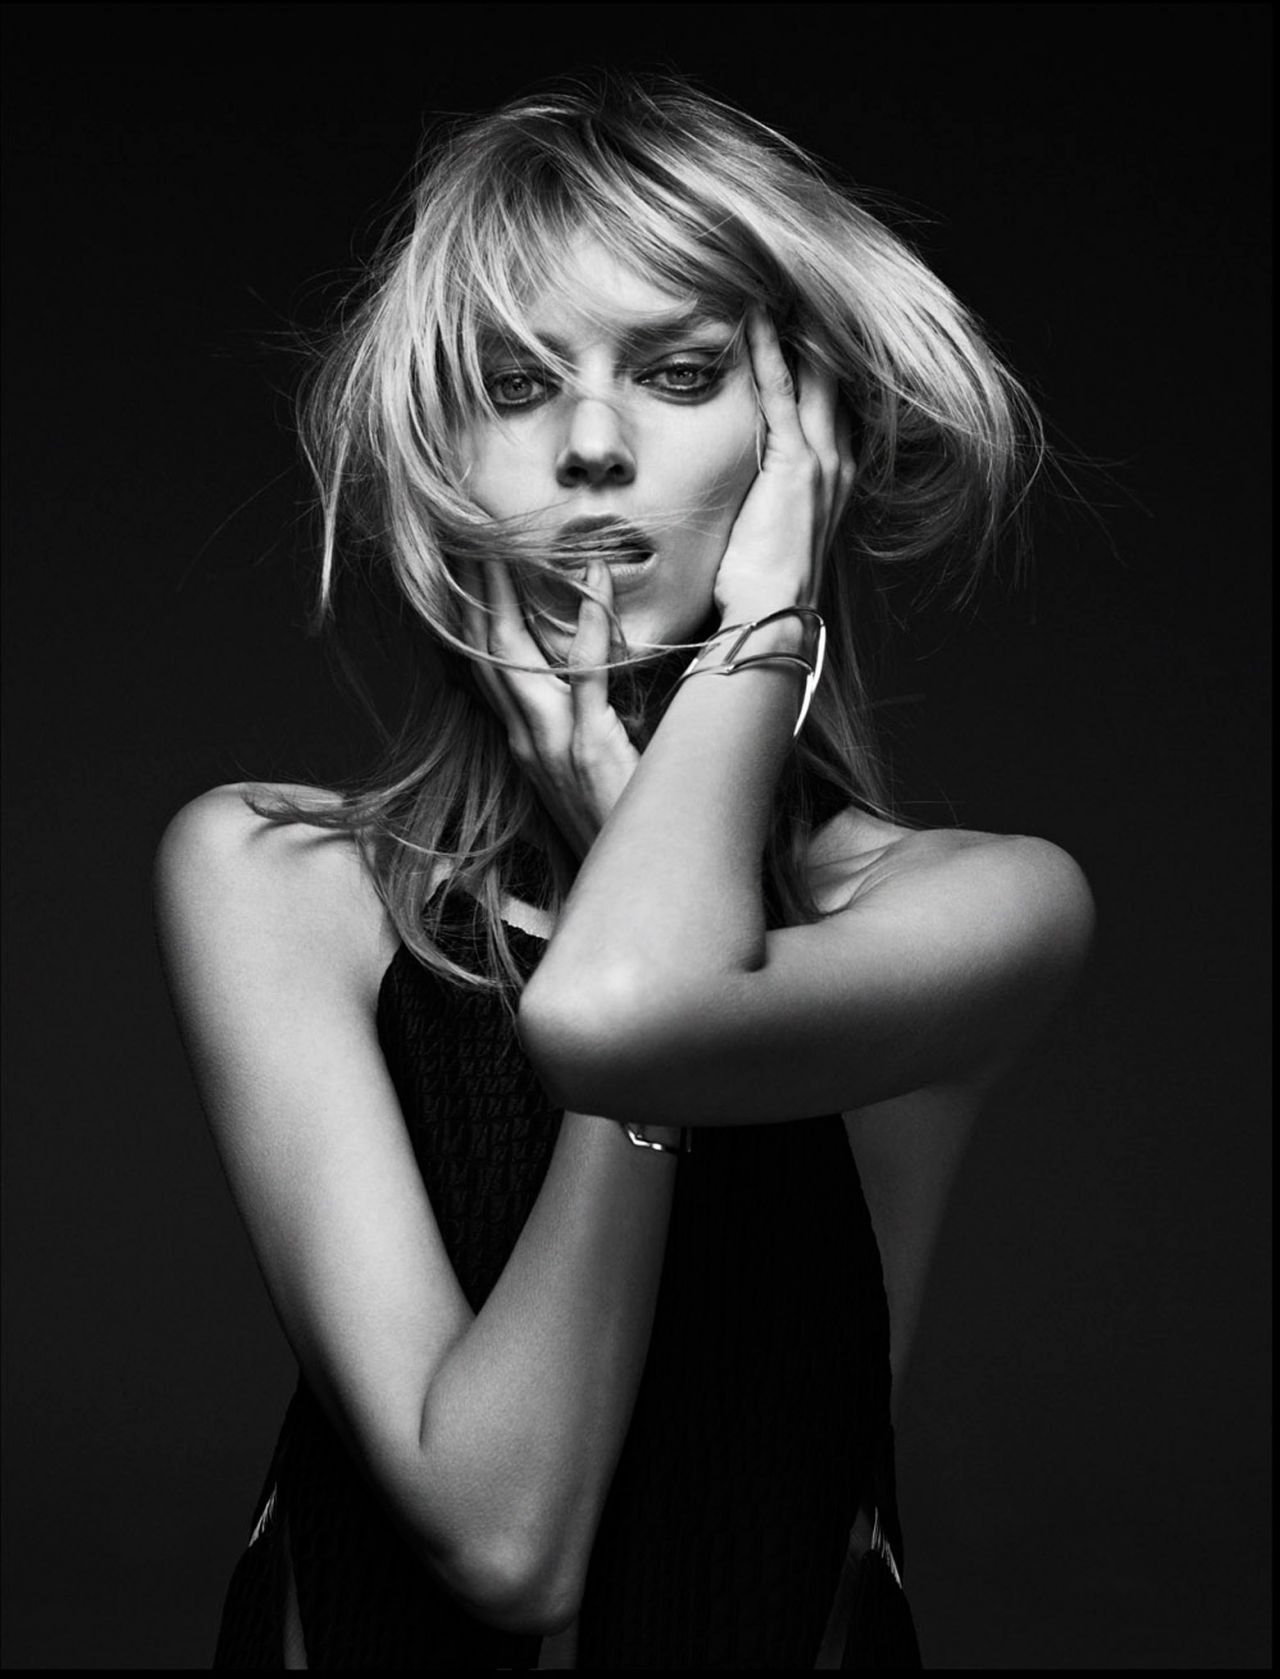 Anja Rubik Photoshoot by Barnaby Roper (2013)